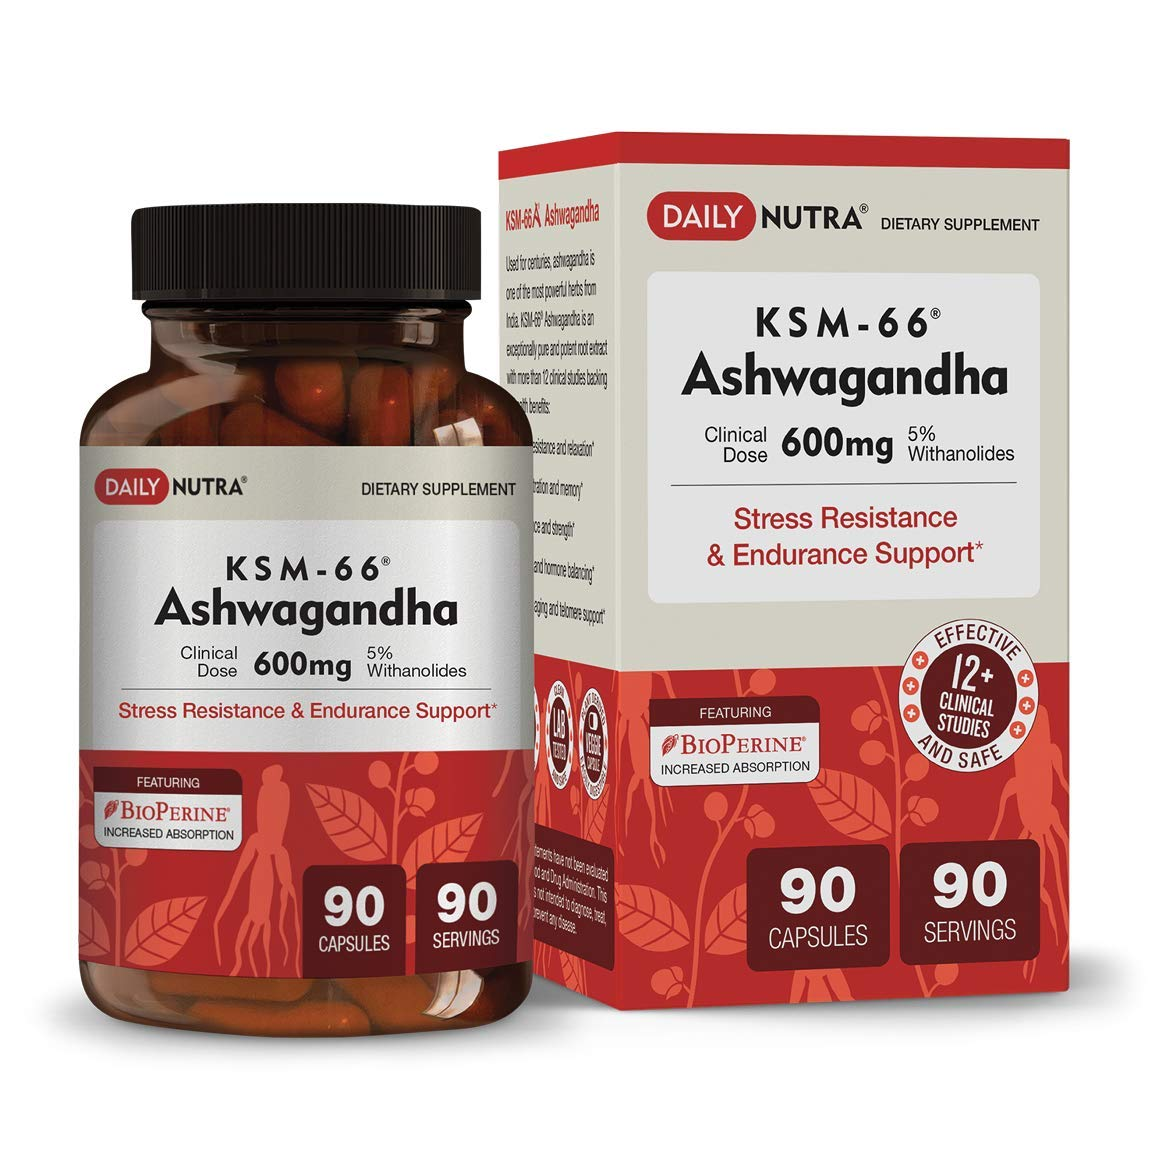 KSM-66 Ashwagandha 600mg – Organic Root Extract – High Potency 5 Withanolides – Health Benefits Include Reduced Stress and Anxiety, Increased Energy and Focus 90 Vegetarian Capsules